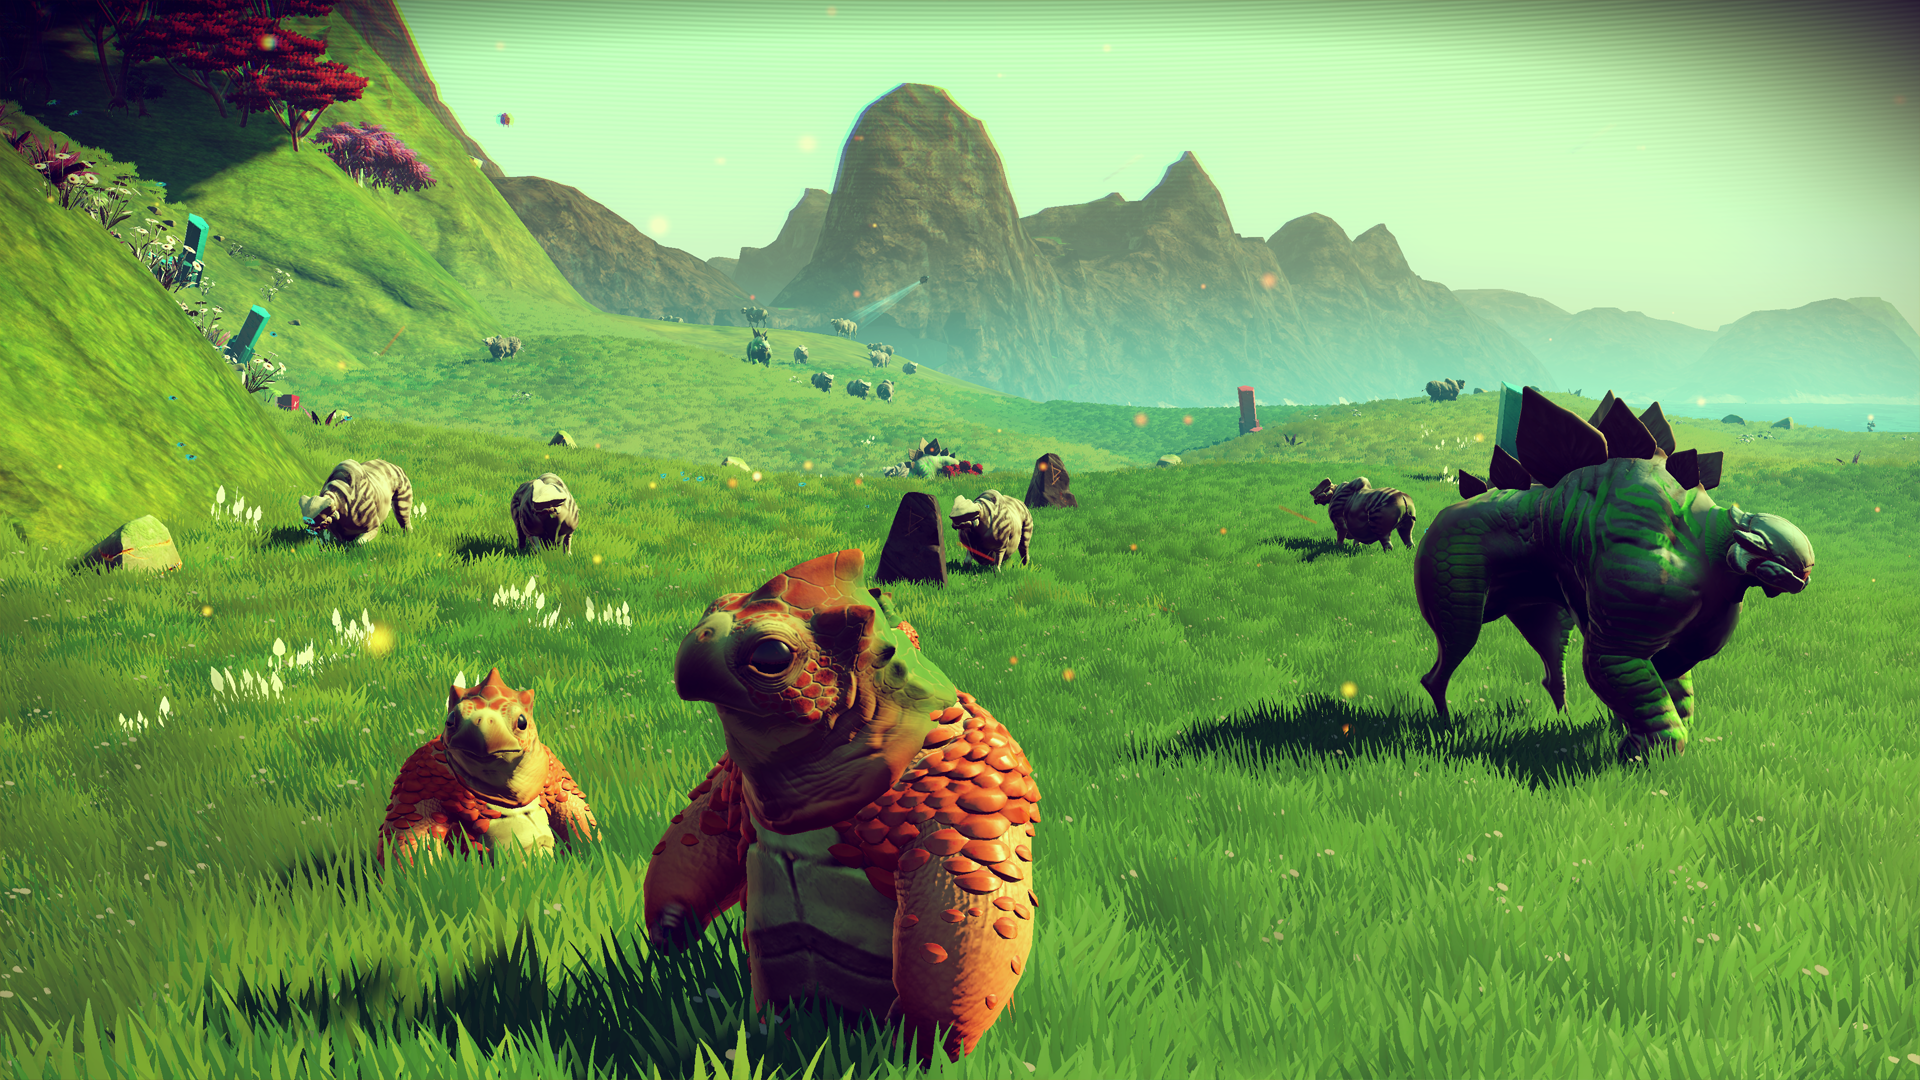 Two No Man's Sky players manage to meet, but apparently can't see each other